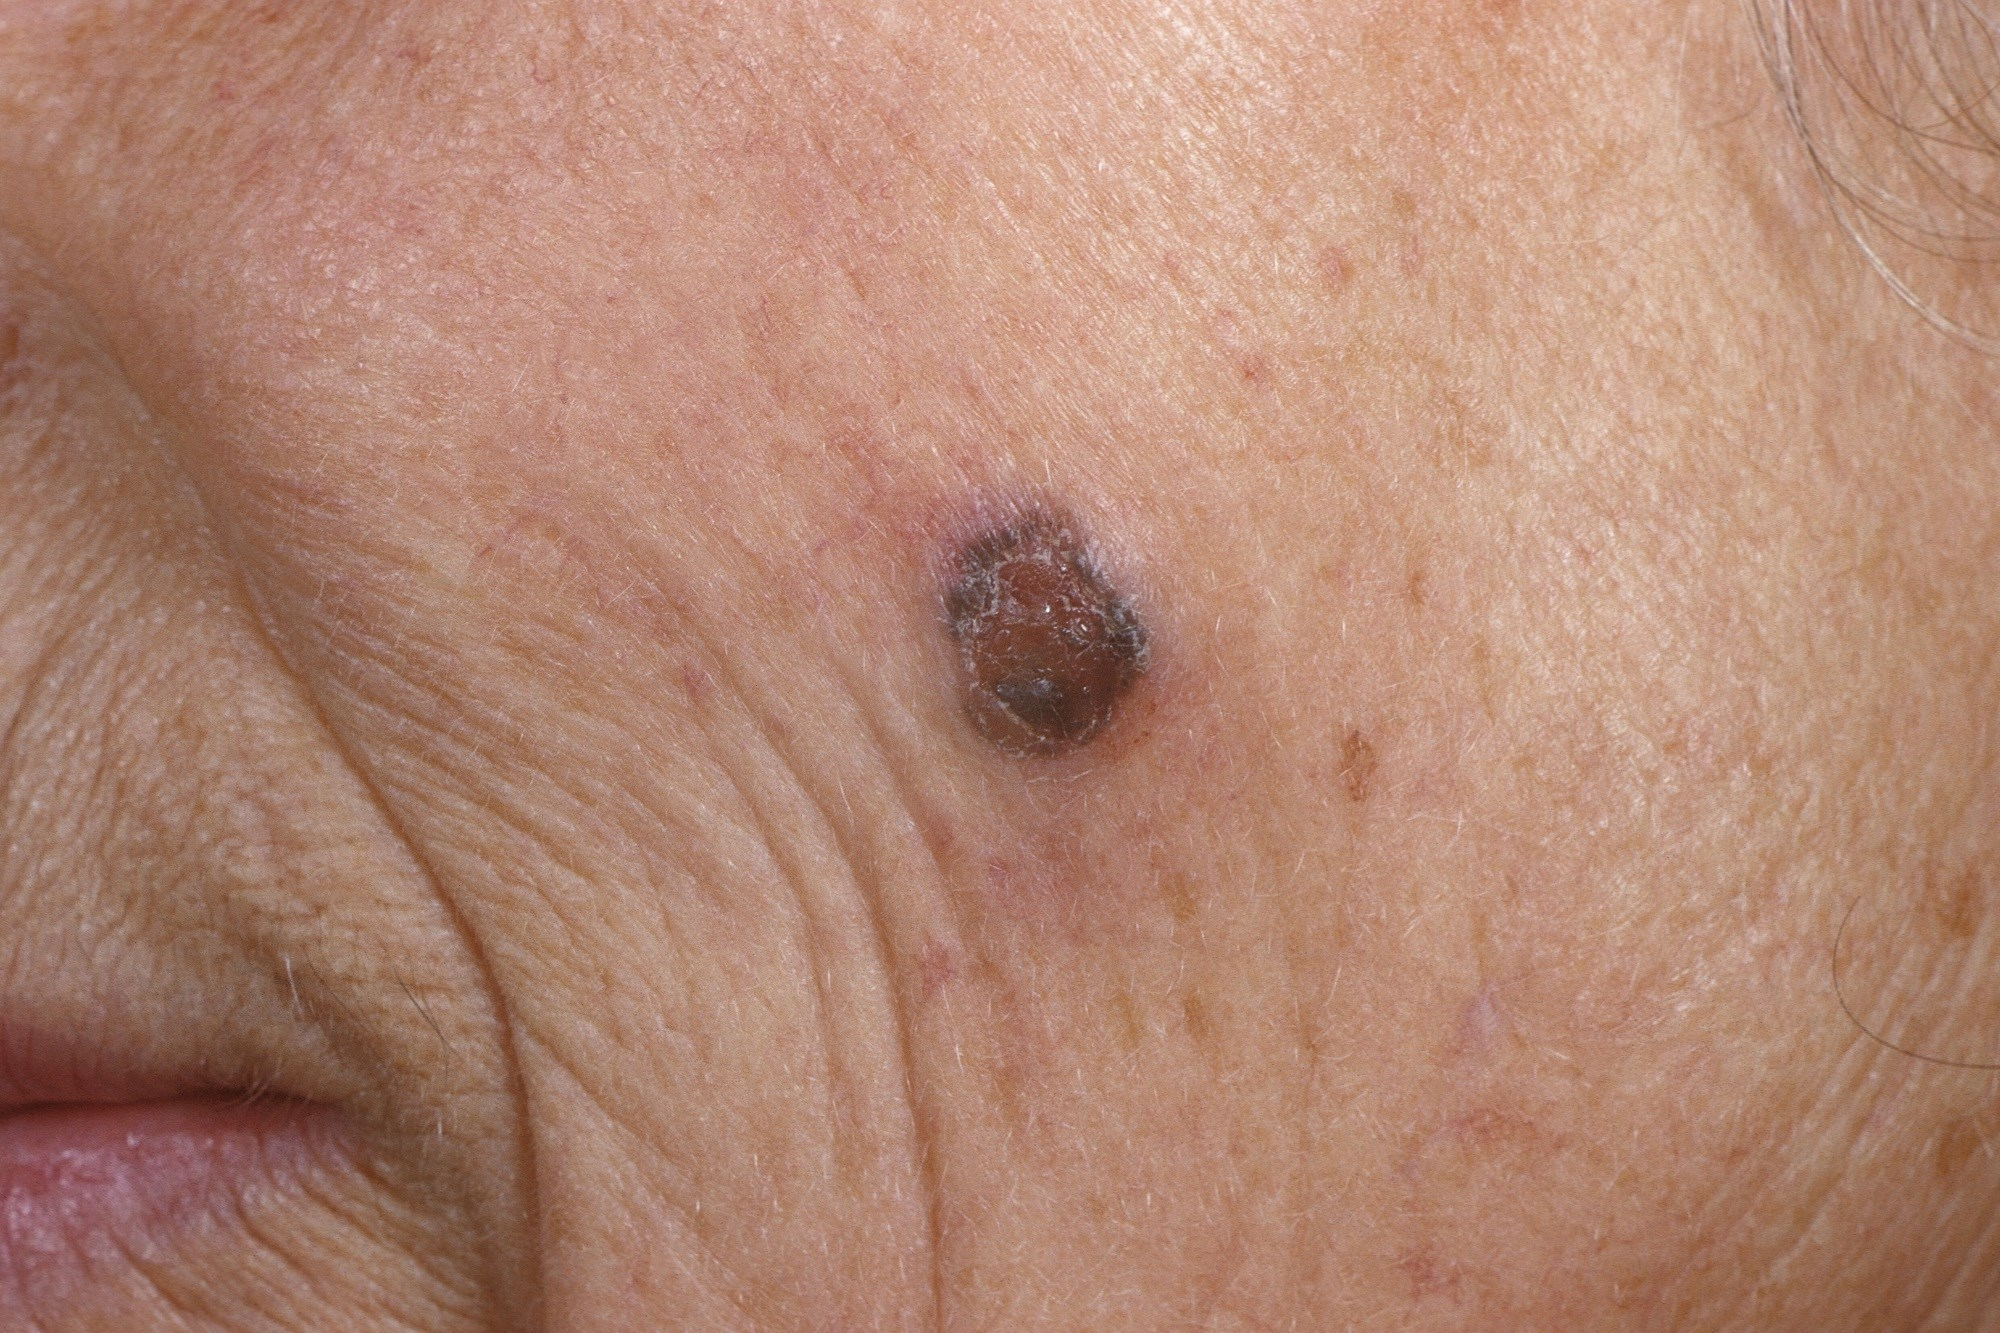 Age, Education Predict Skin Protection Following Melanoma Diagnosis